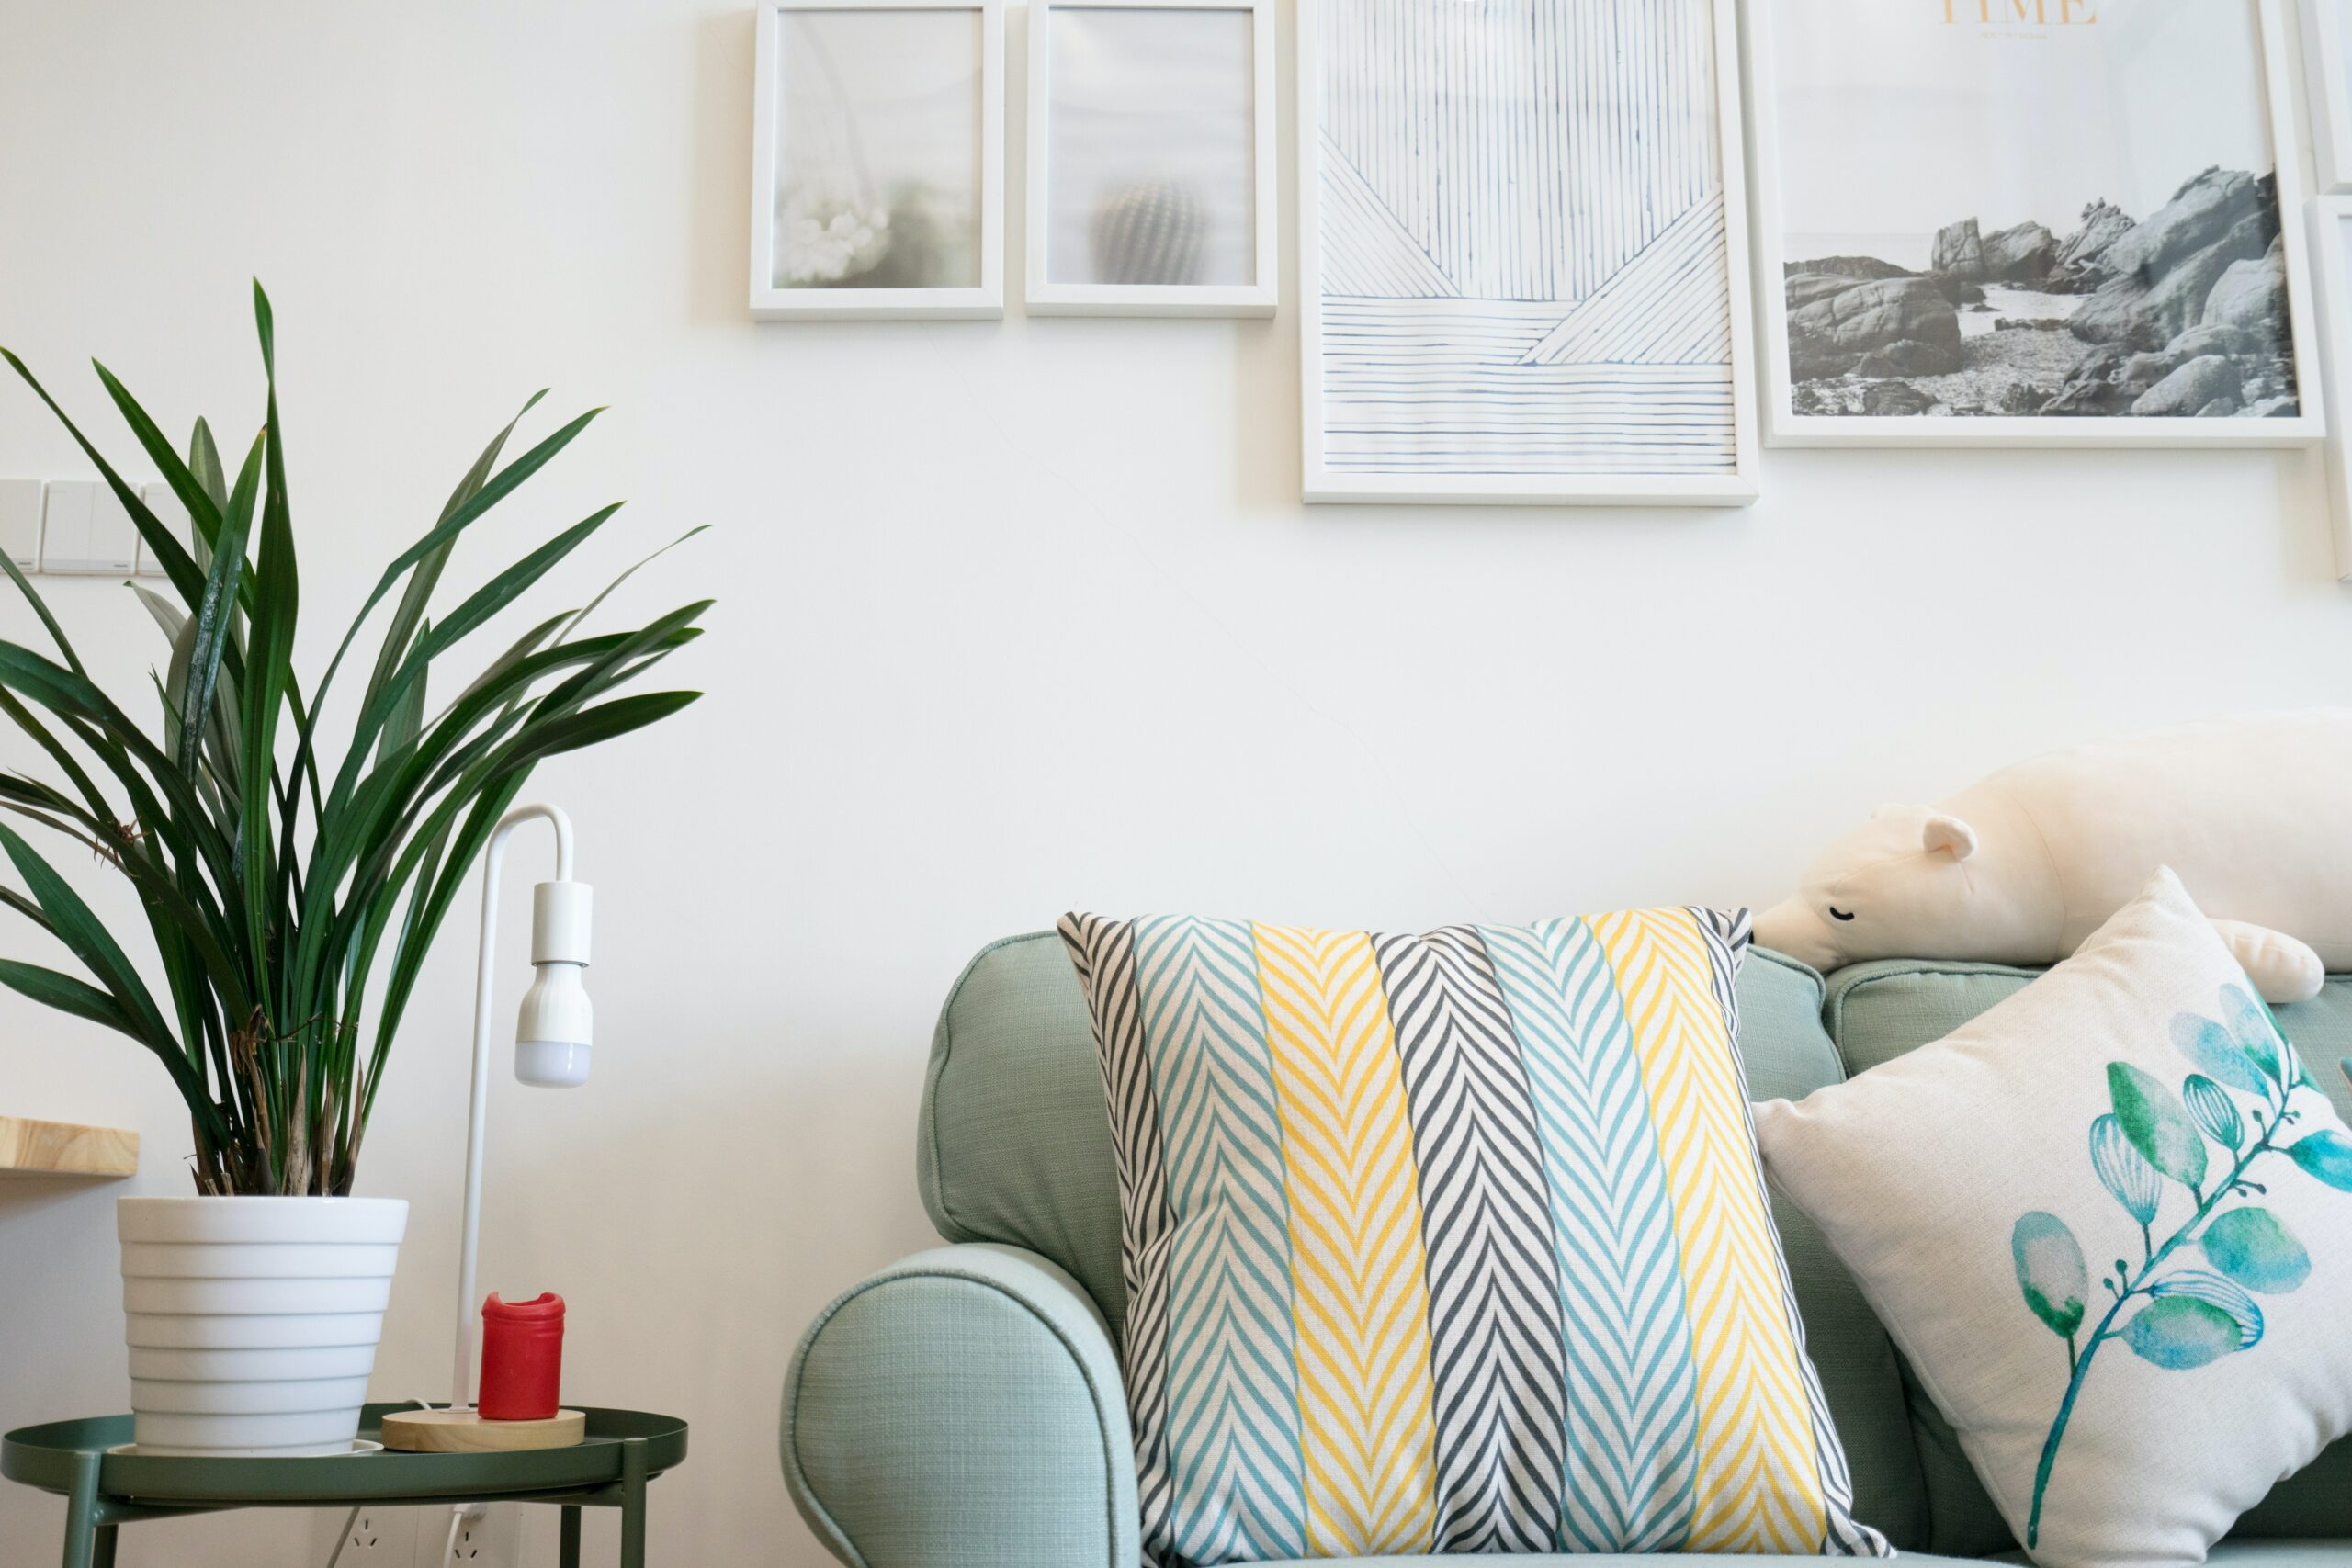 How to improve your home decor in a small budget + Finance tip